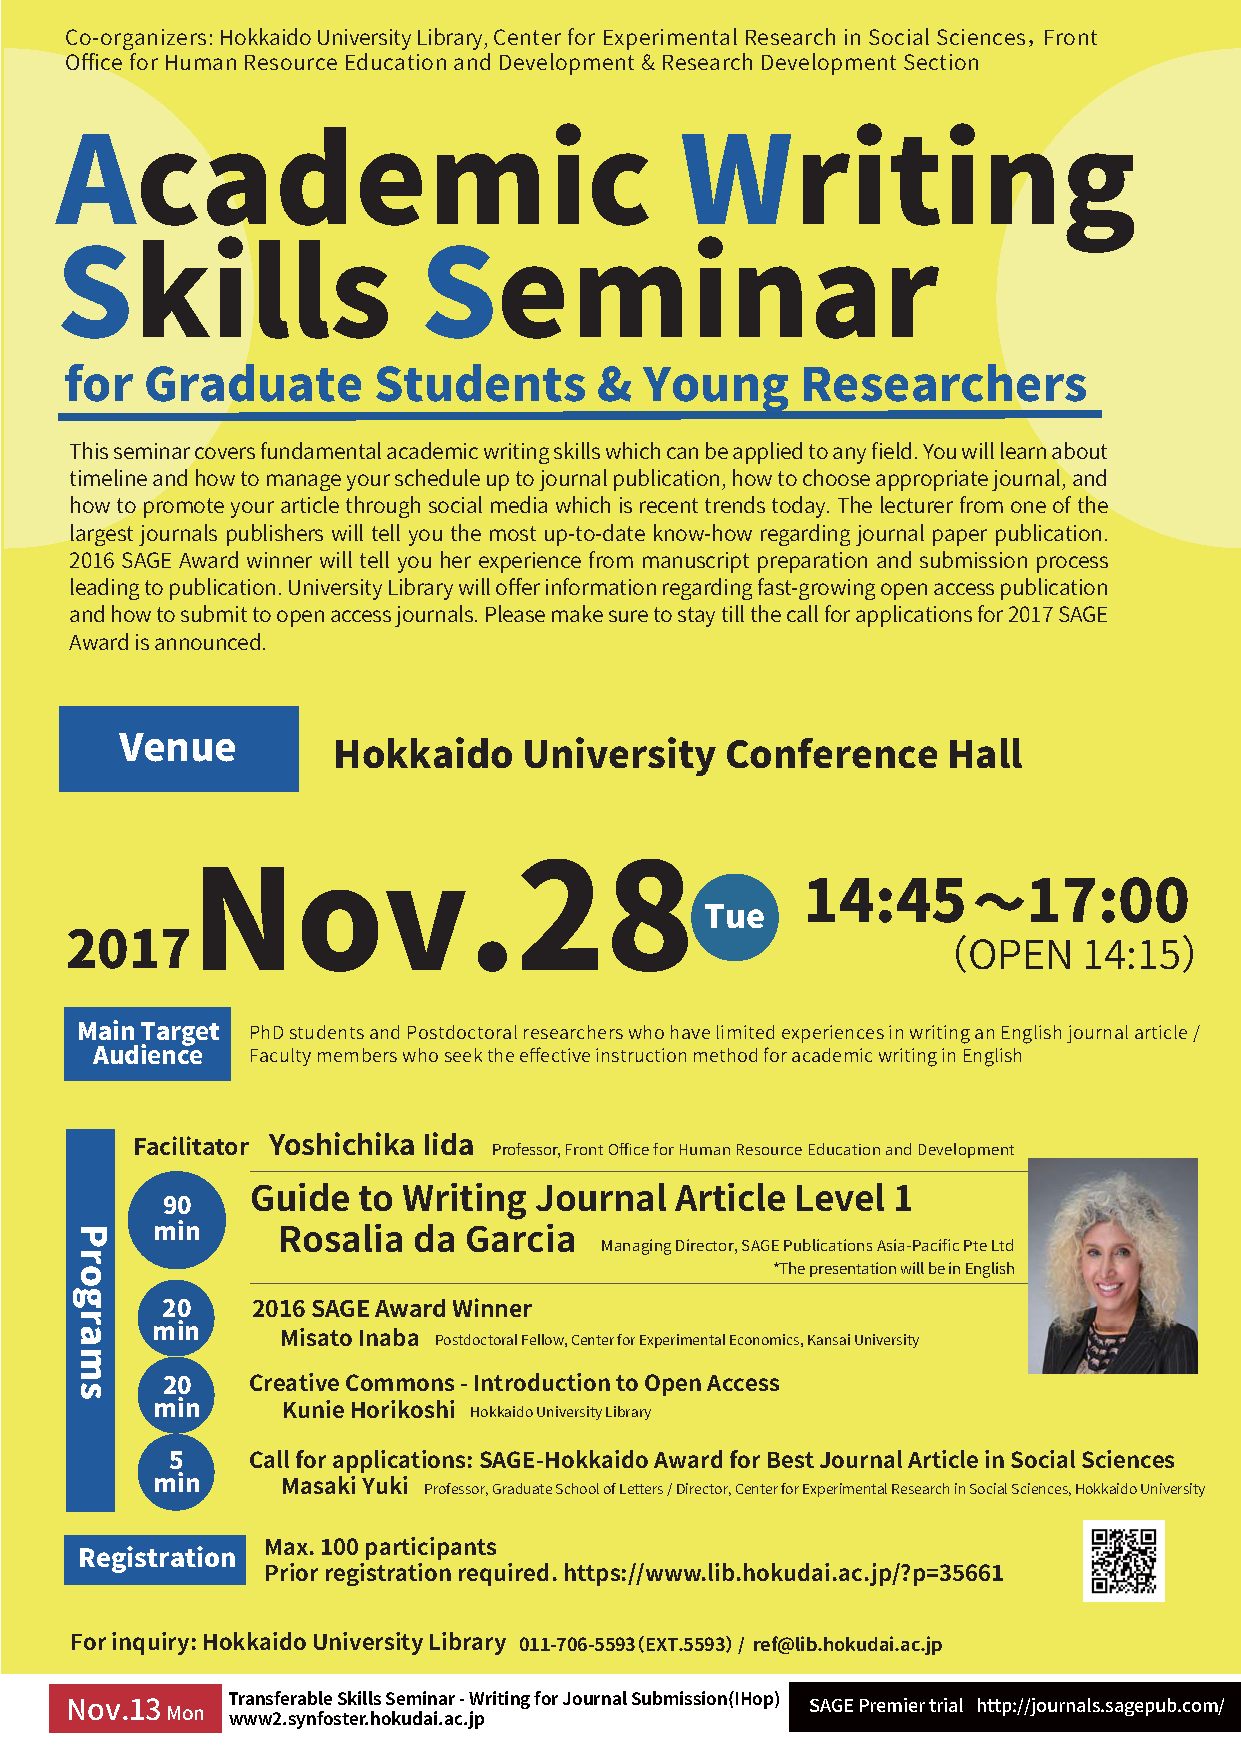 Academic writing services for graduate students